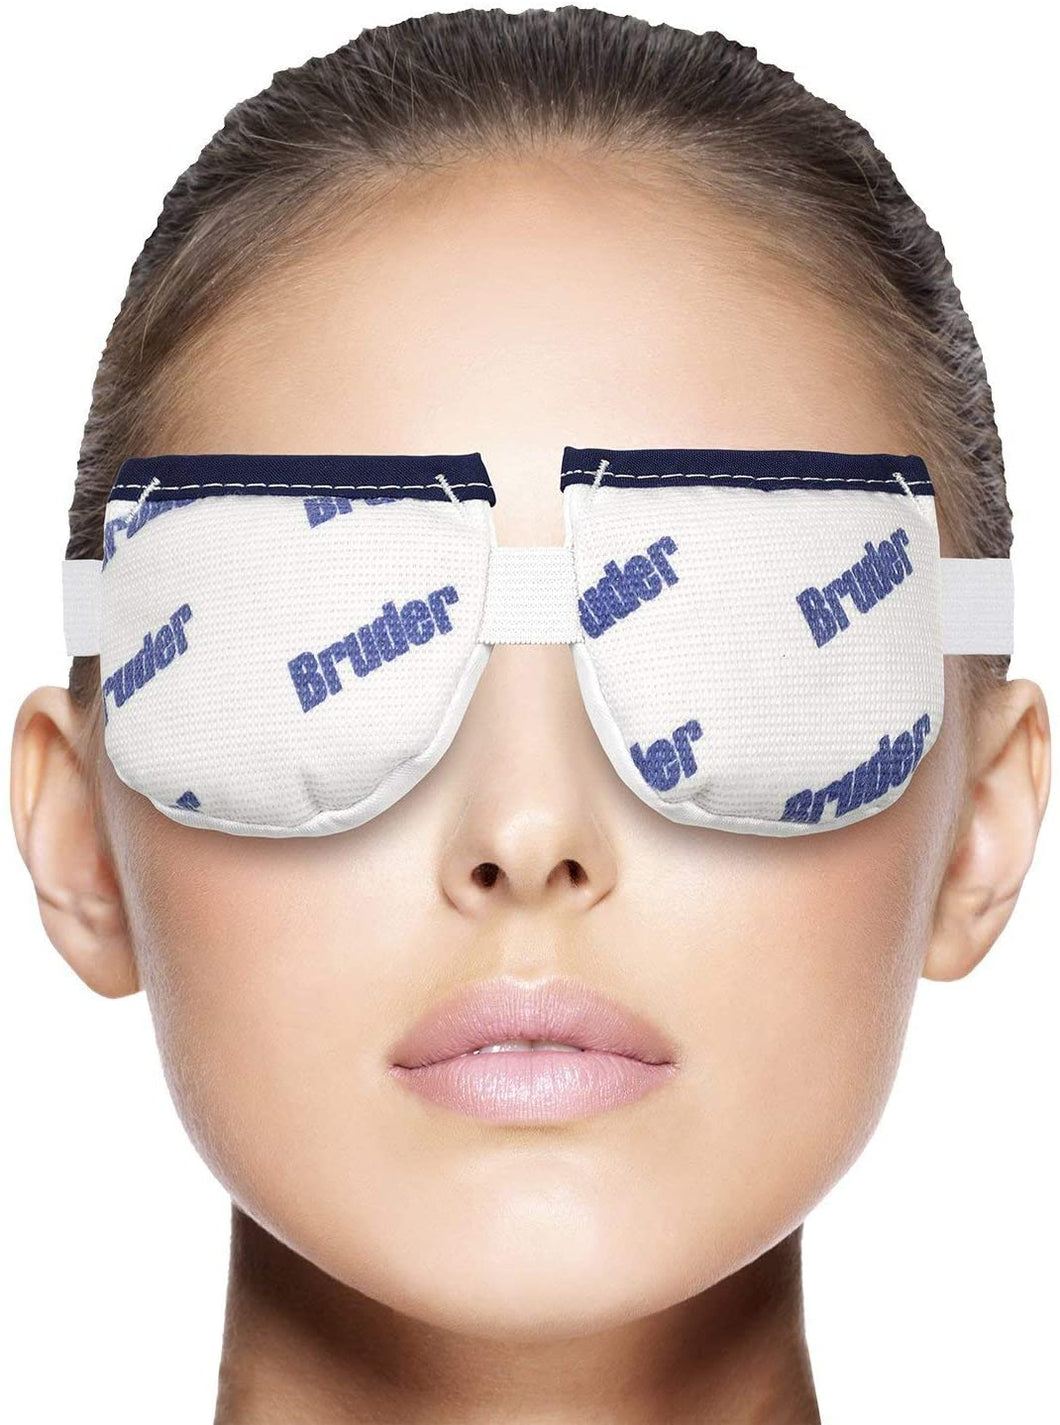 Bruder Eye Hydrating Mask with Medibeads